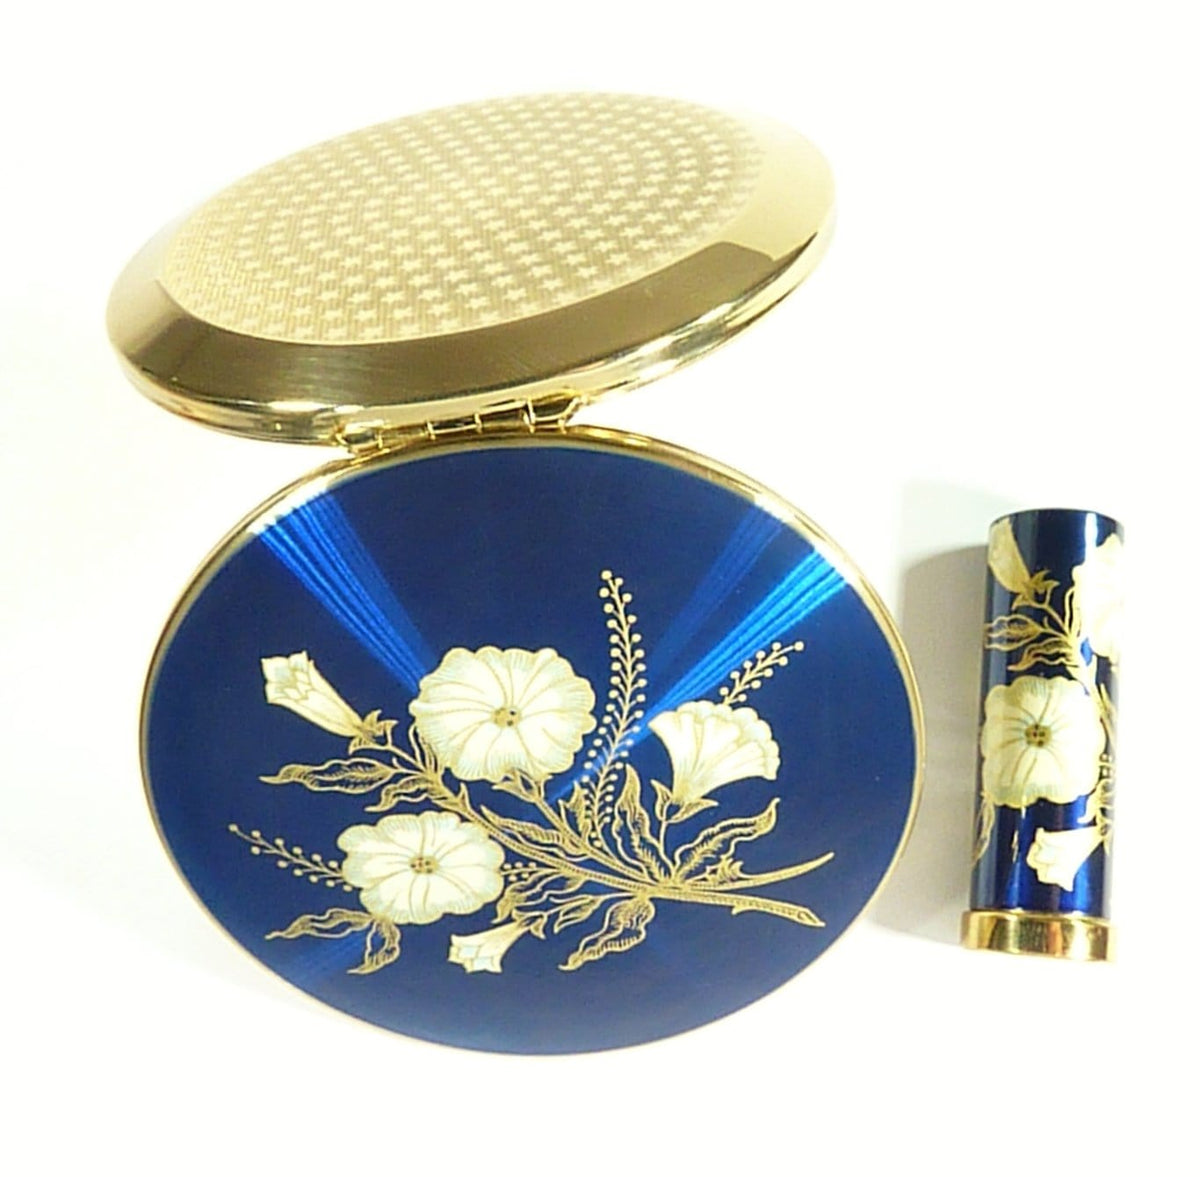 1960s Unused Stratton Compact & Lipstick Case